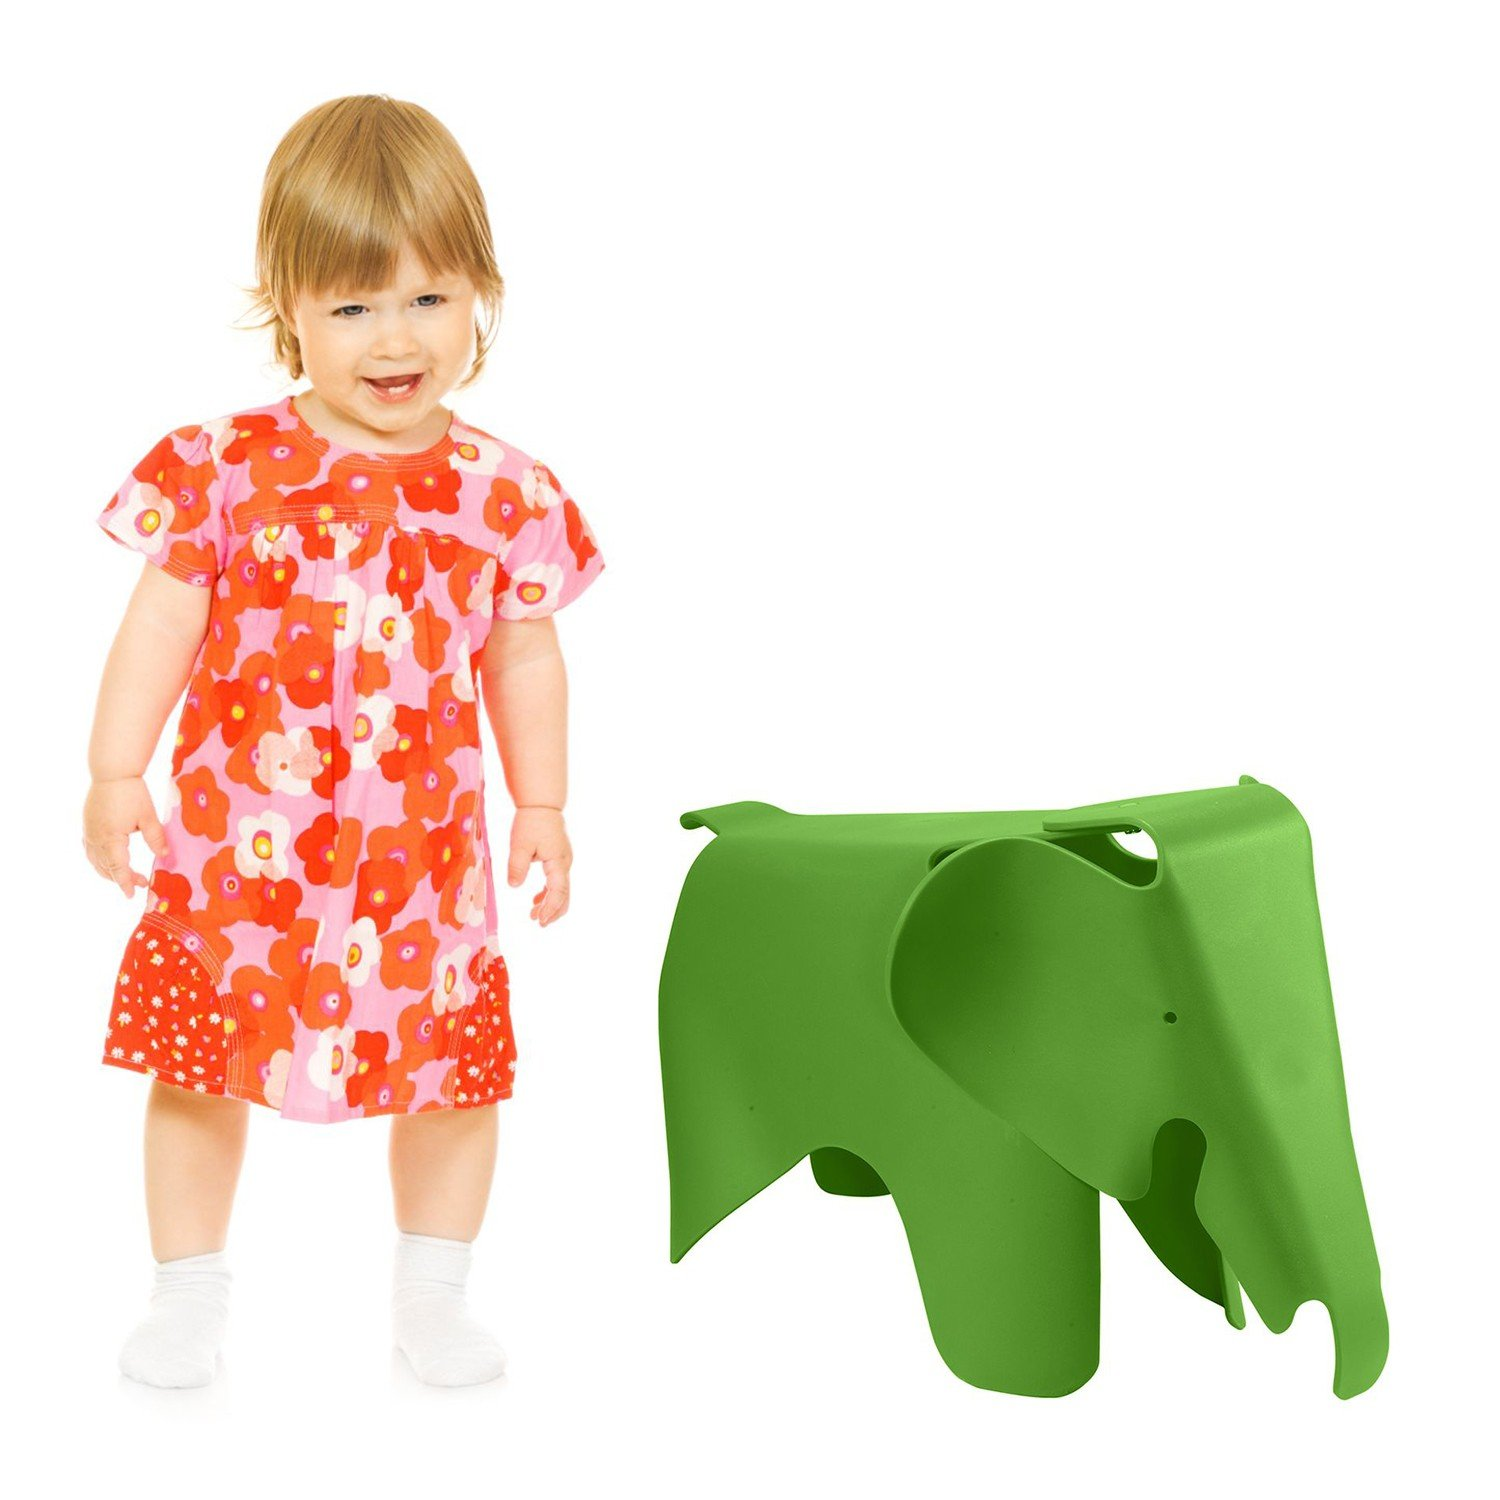 Chair Baby Elephant Style For Children Green Plastic Sillatea